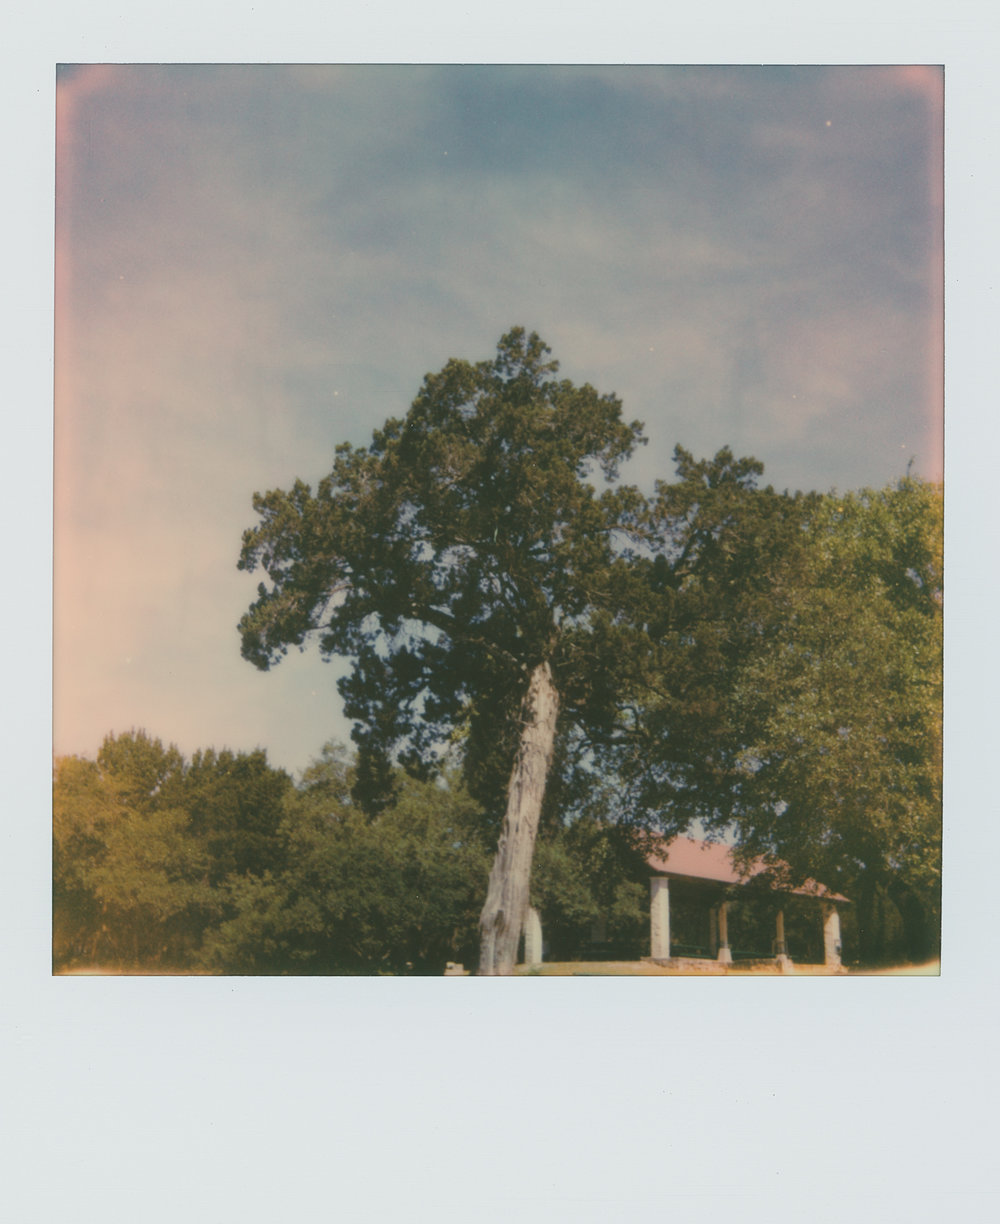 pola week tree (1 of 1).jpg